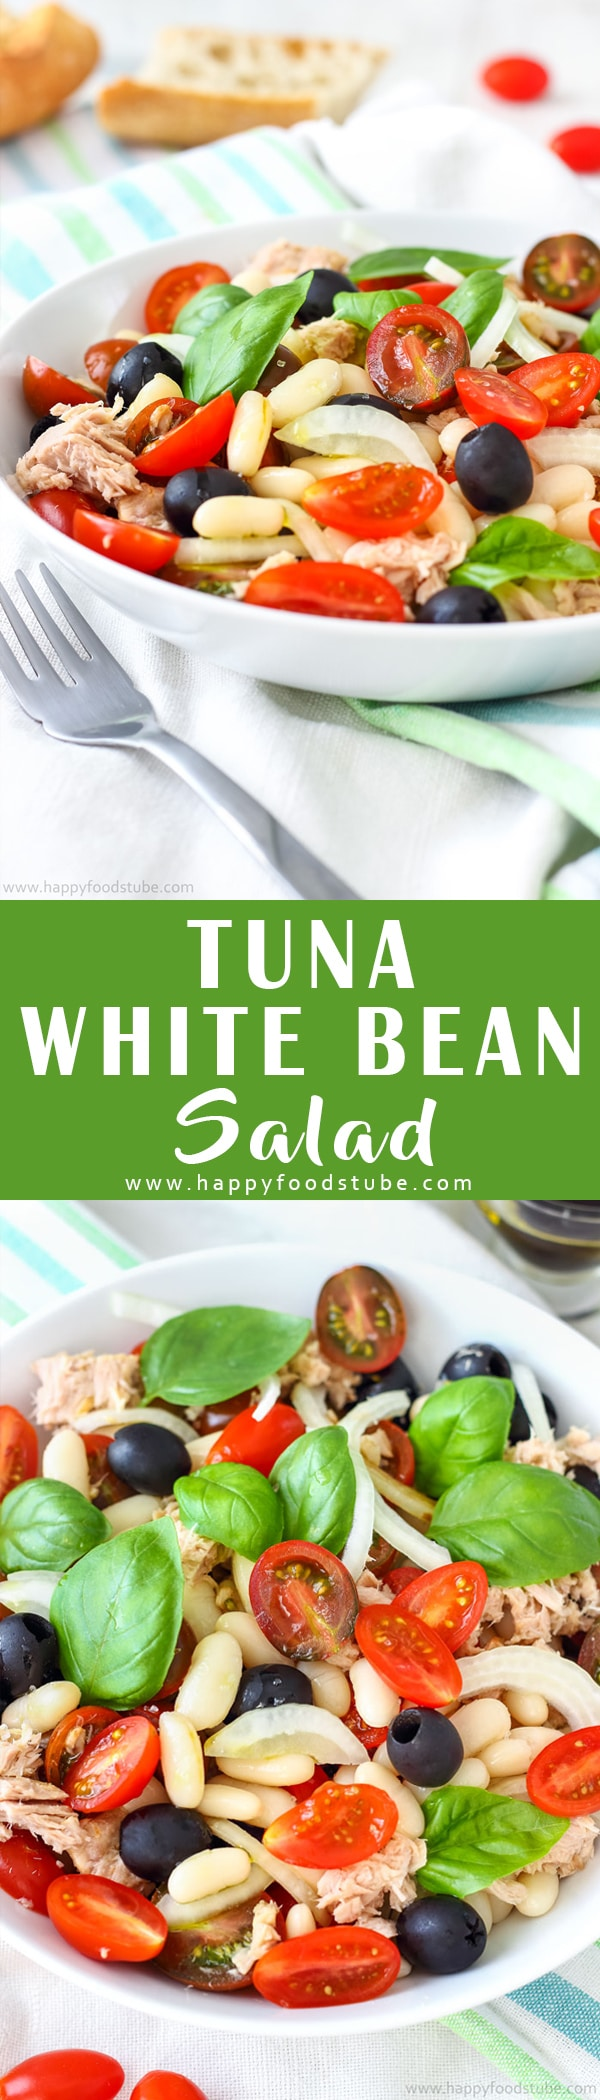 This tuna white bean salad is perfect for picnics or quick lunch. If you love Mediterranean food, you will enjoy this super easy recipe. Healthy Mediterranean diet recipe